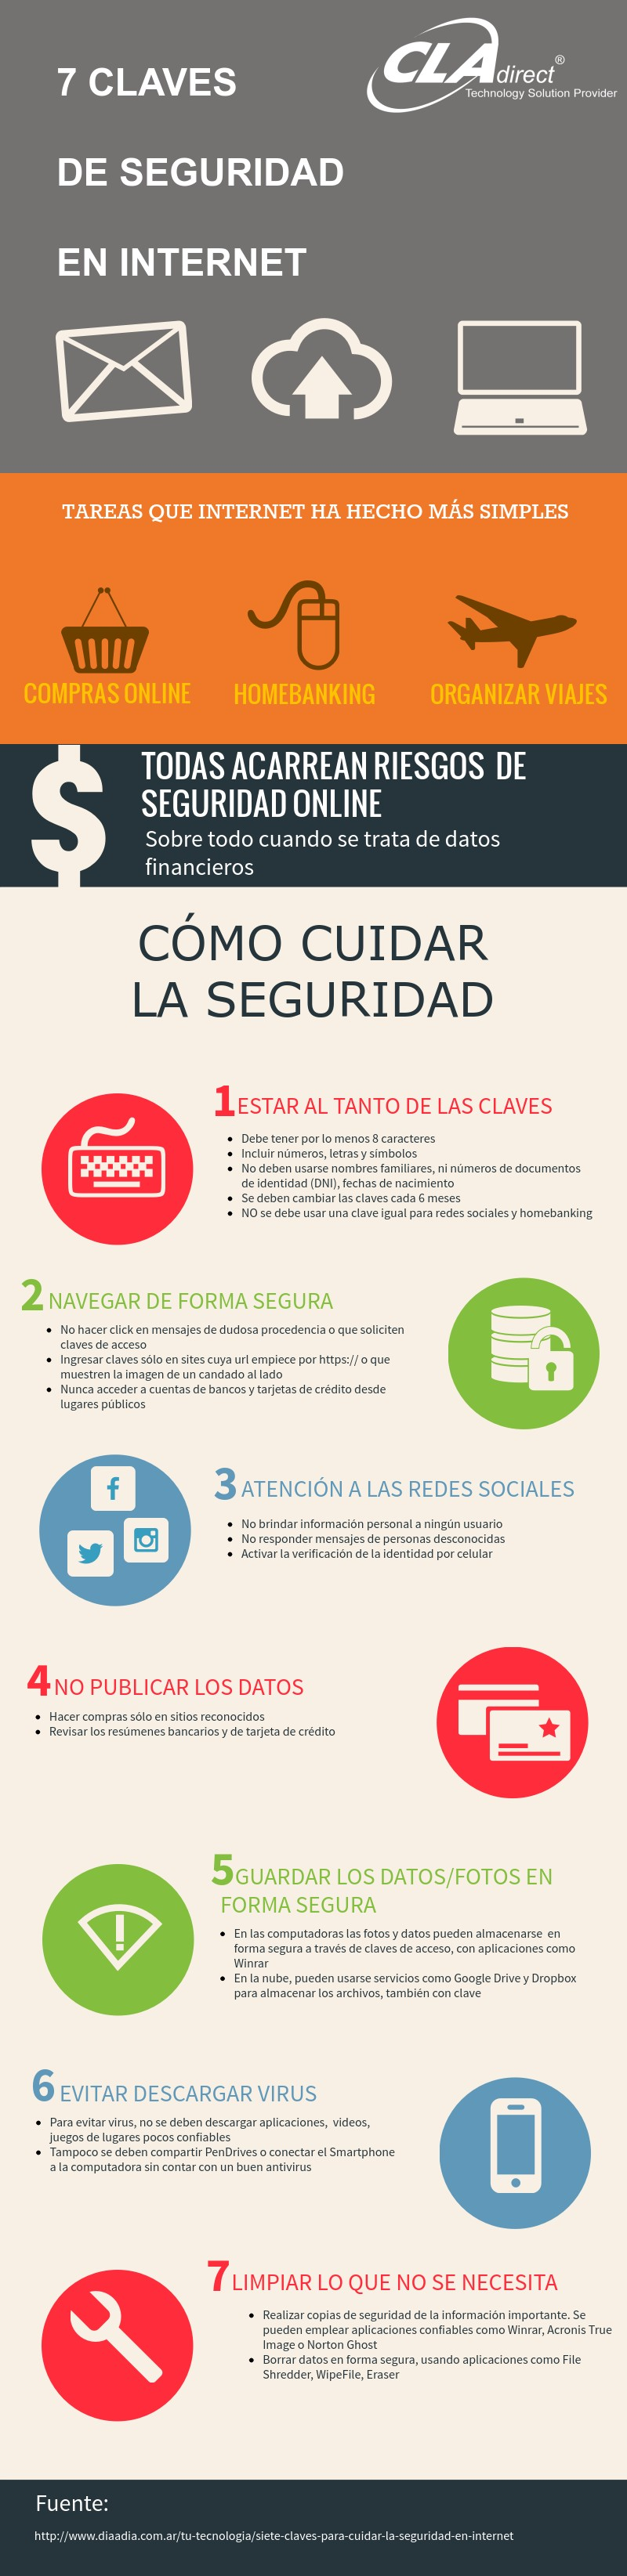 7 claves de seguridad en Internet